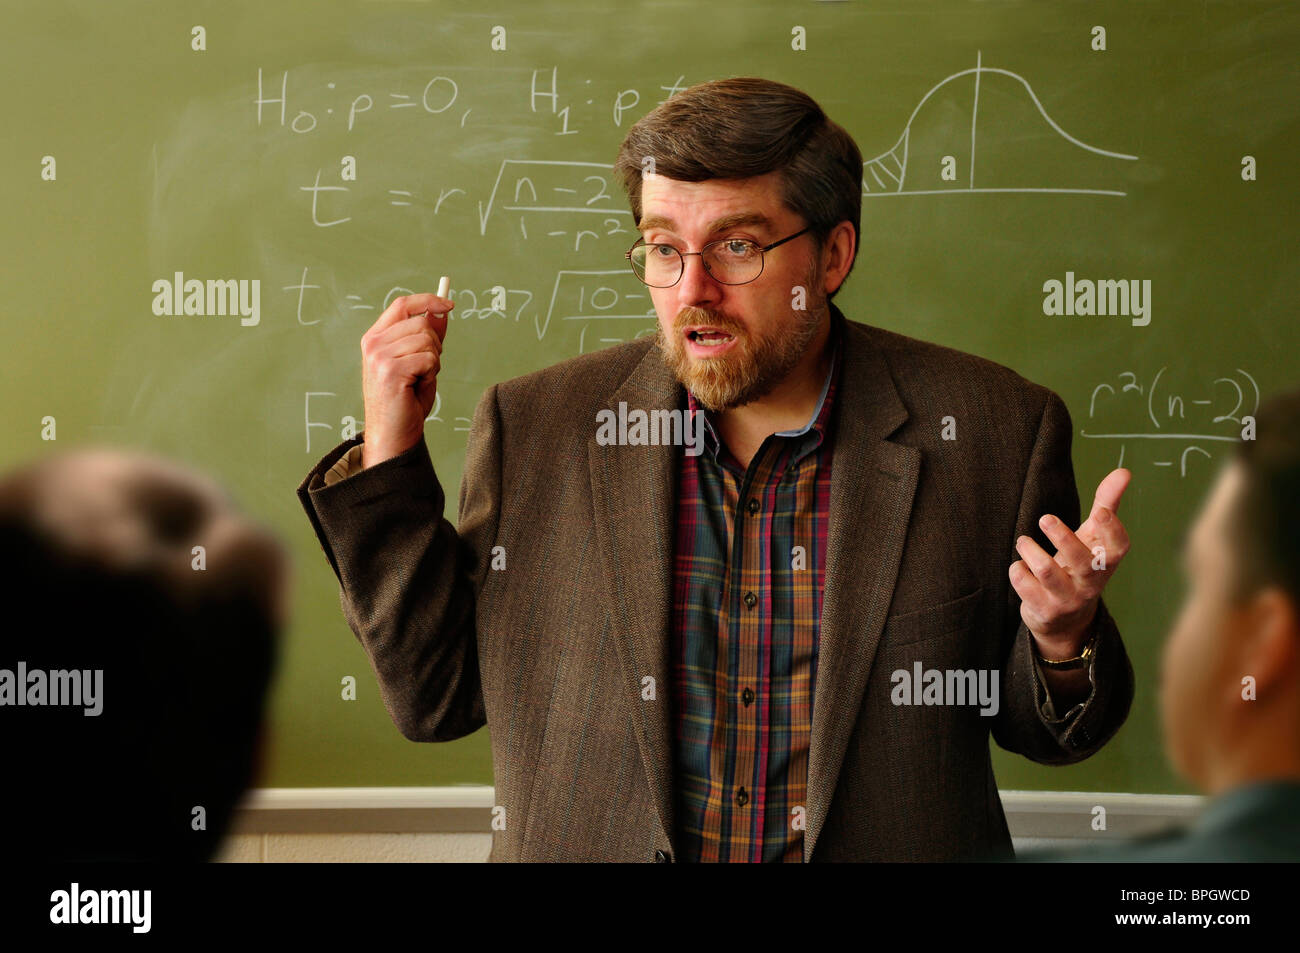 Math professor or teacher interacting with students in a classroom, Statistical formula on chalkboard in background. - Stock Image